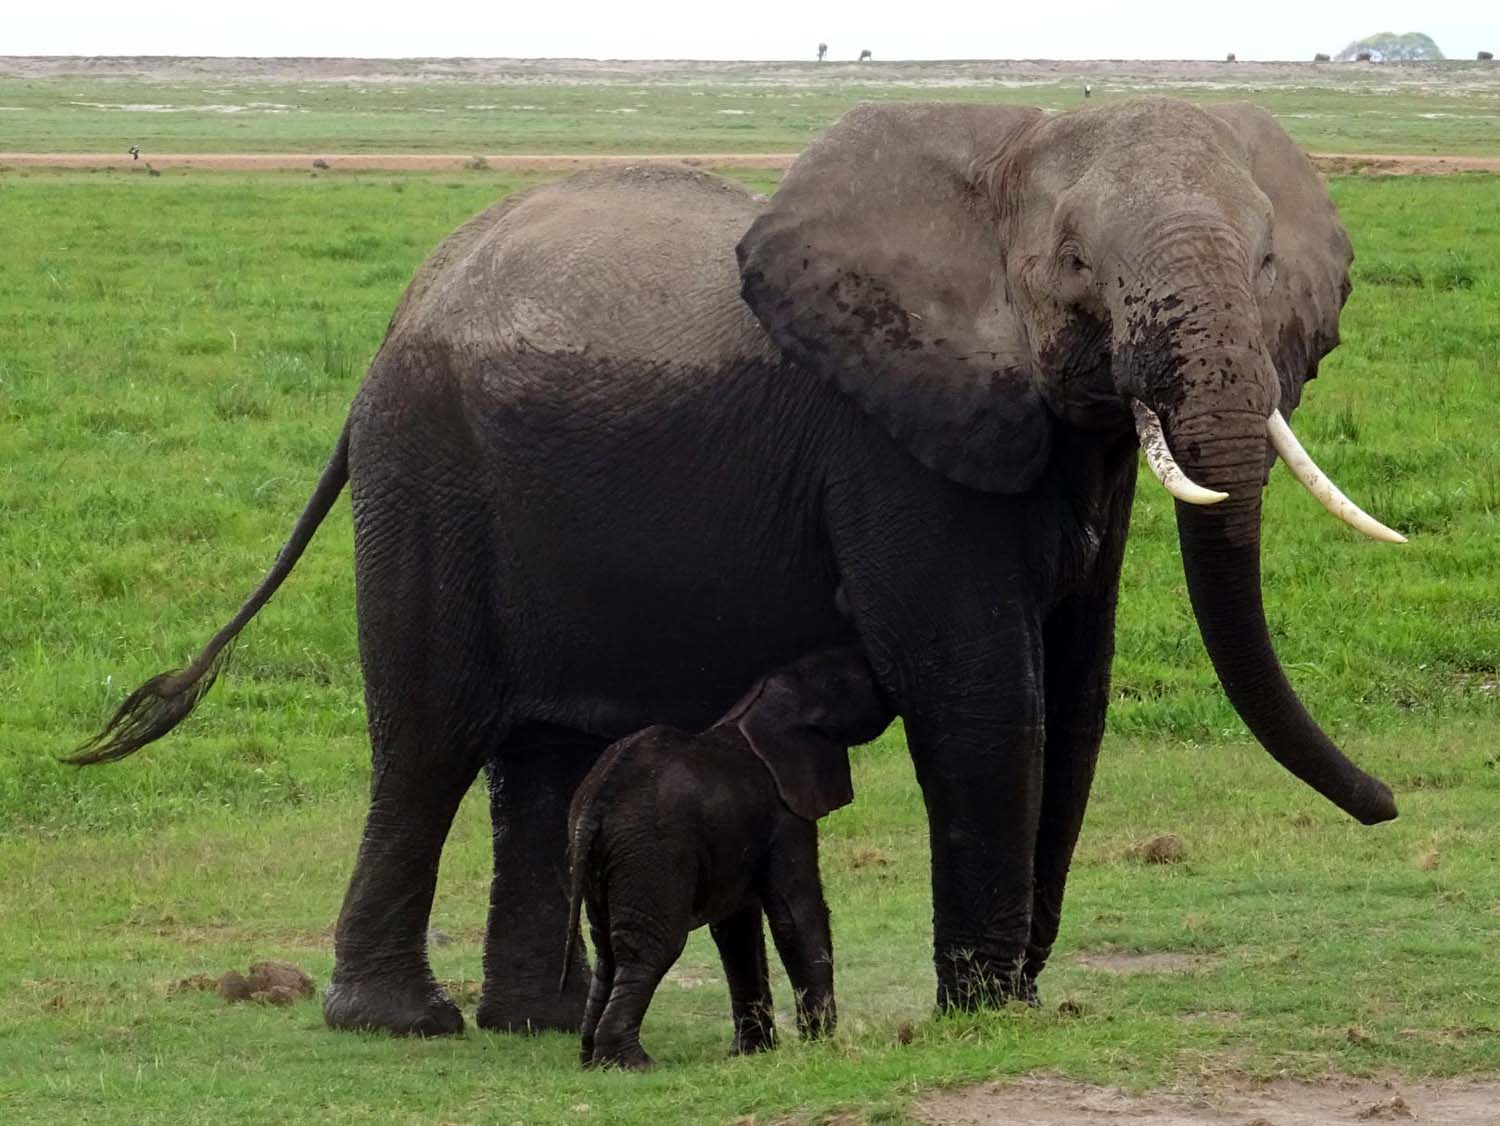 this mum gives her baby a break and a drink when coming onto dry land, you can see the depth of the swamp on her body (Amboseli)